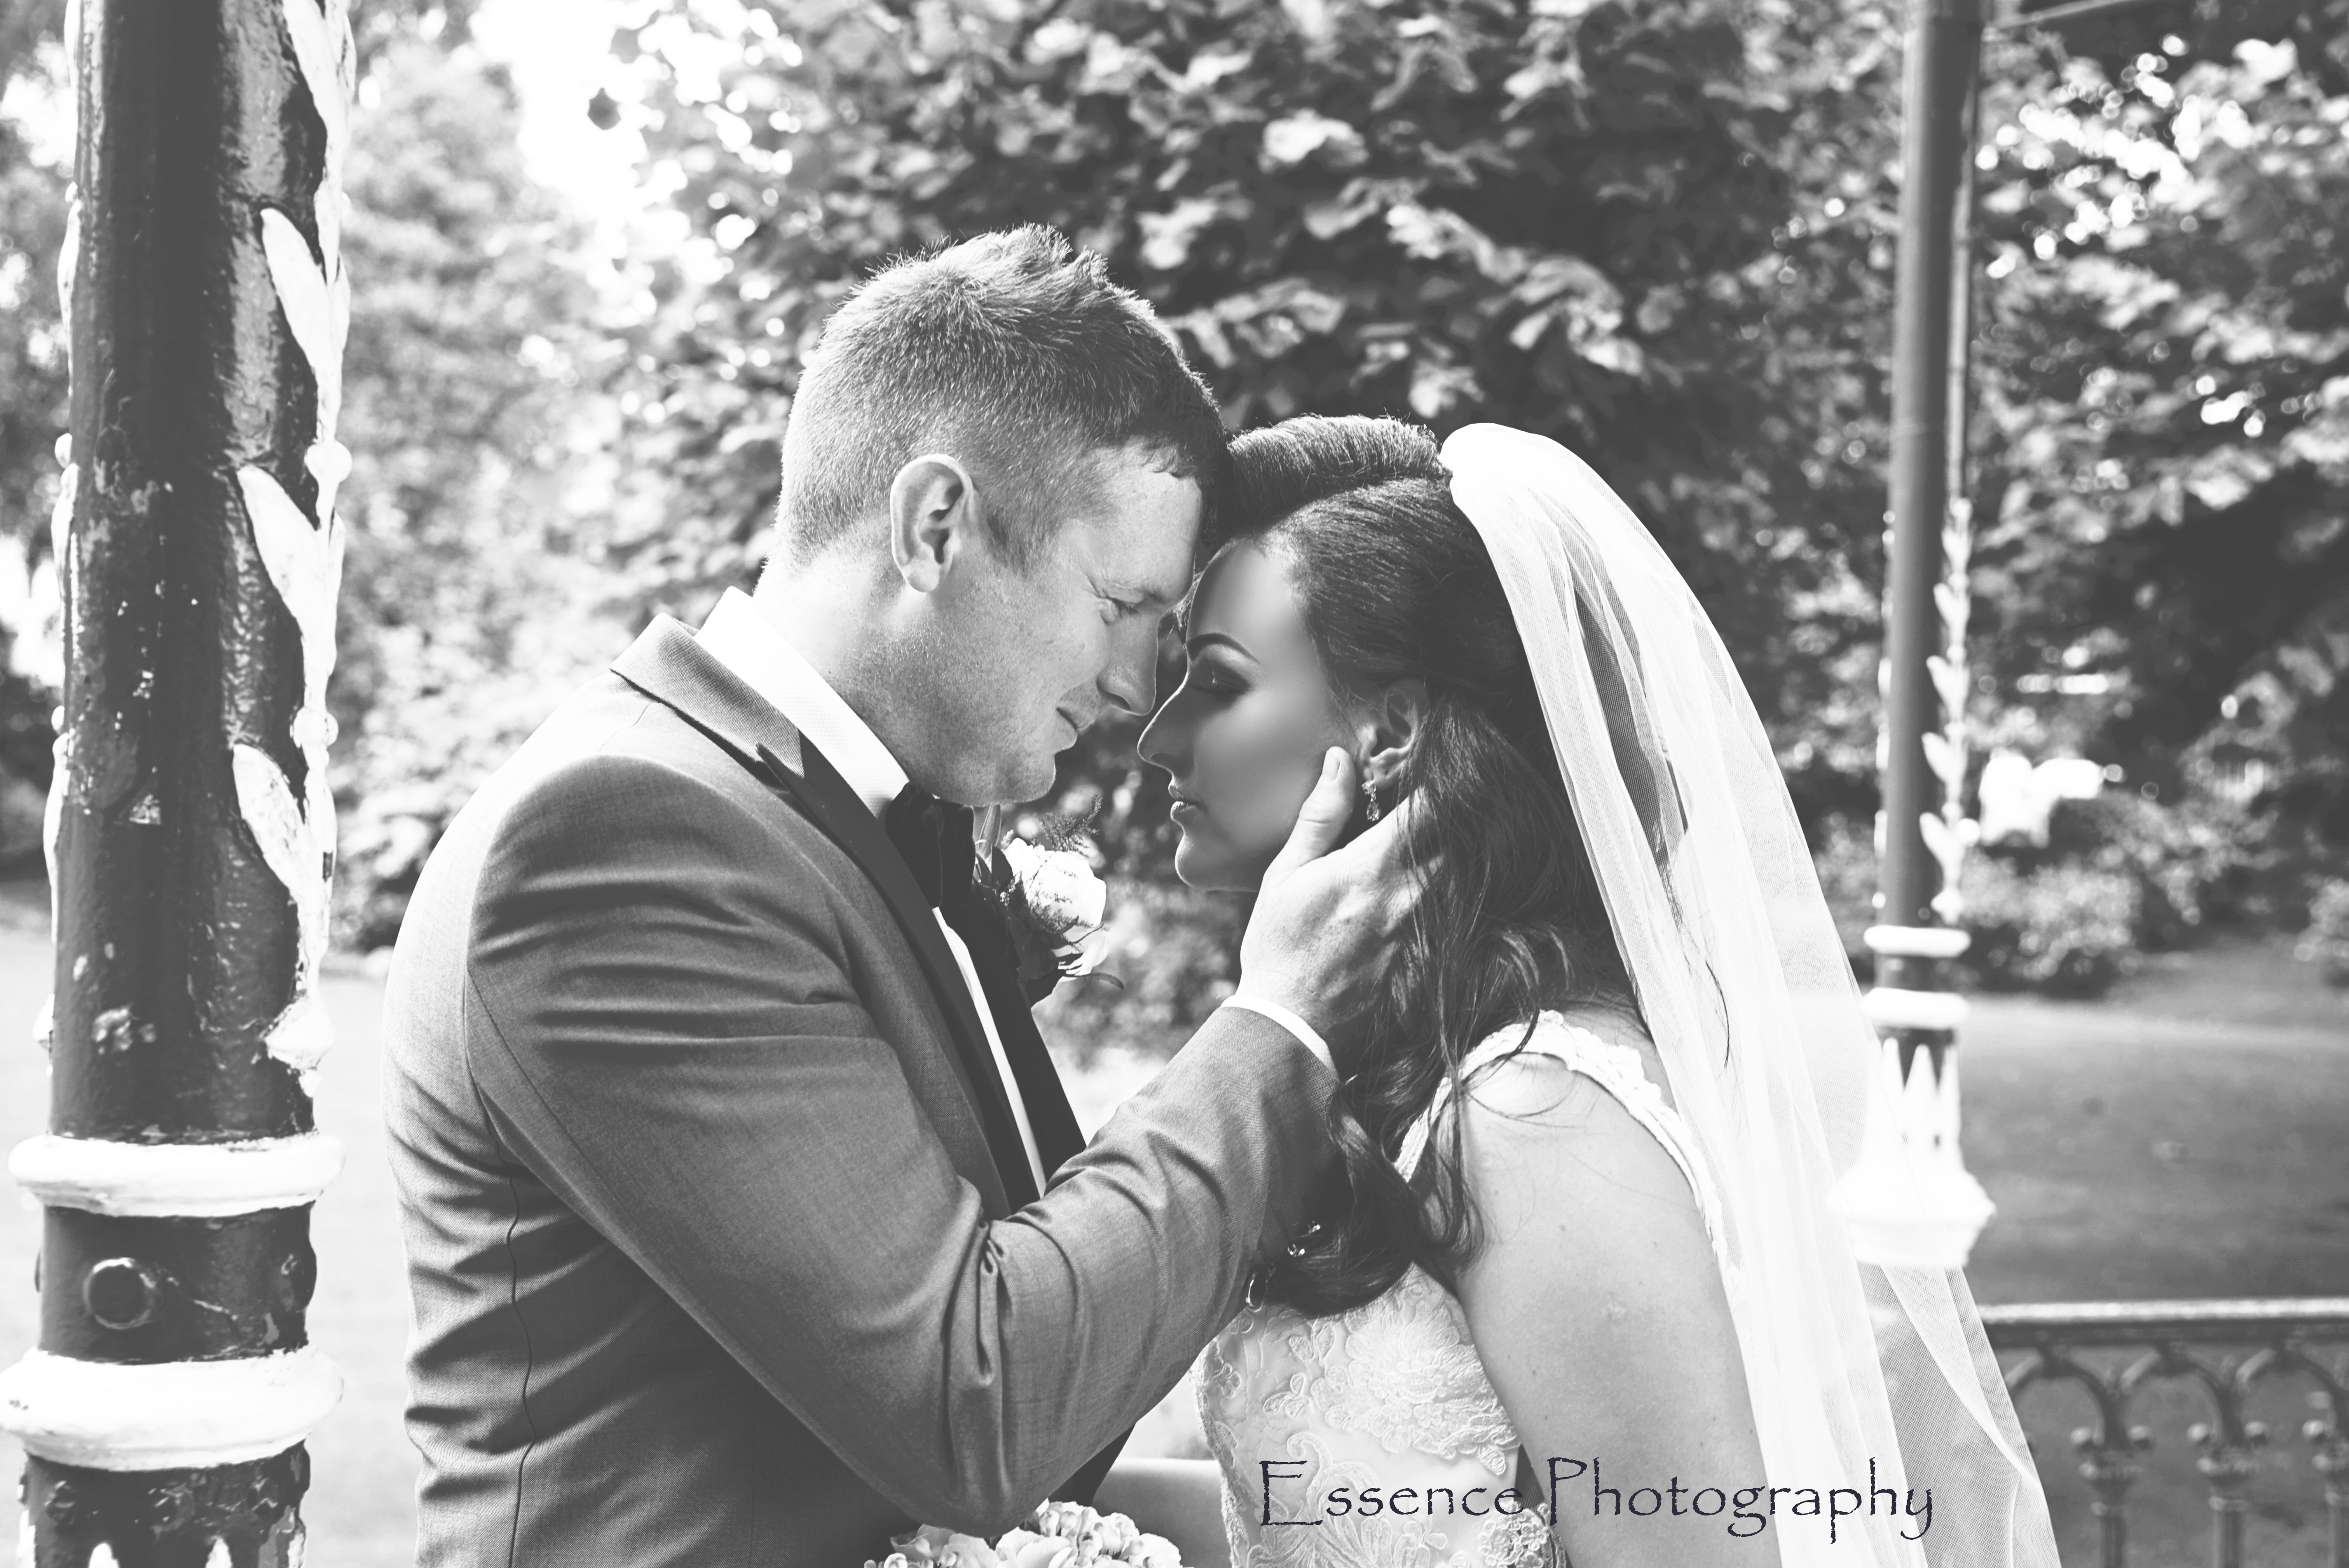 Essence Photography, Wedding Photographer Rostrevor, Newry, County Down, Northern Ireland